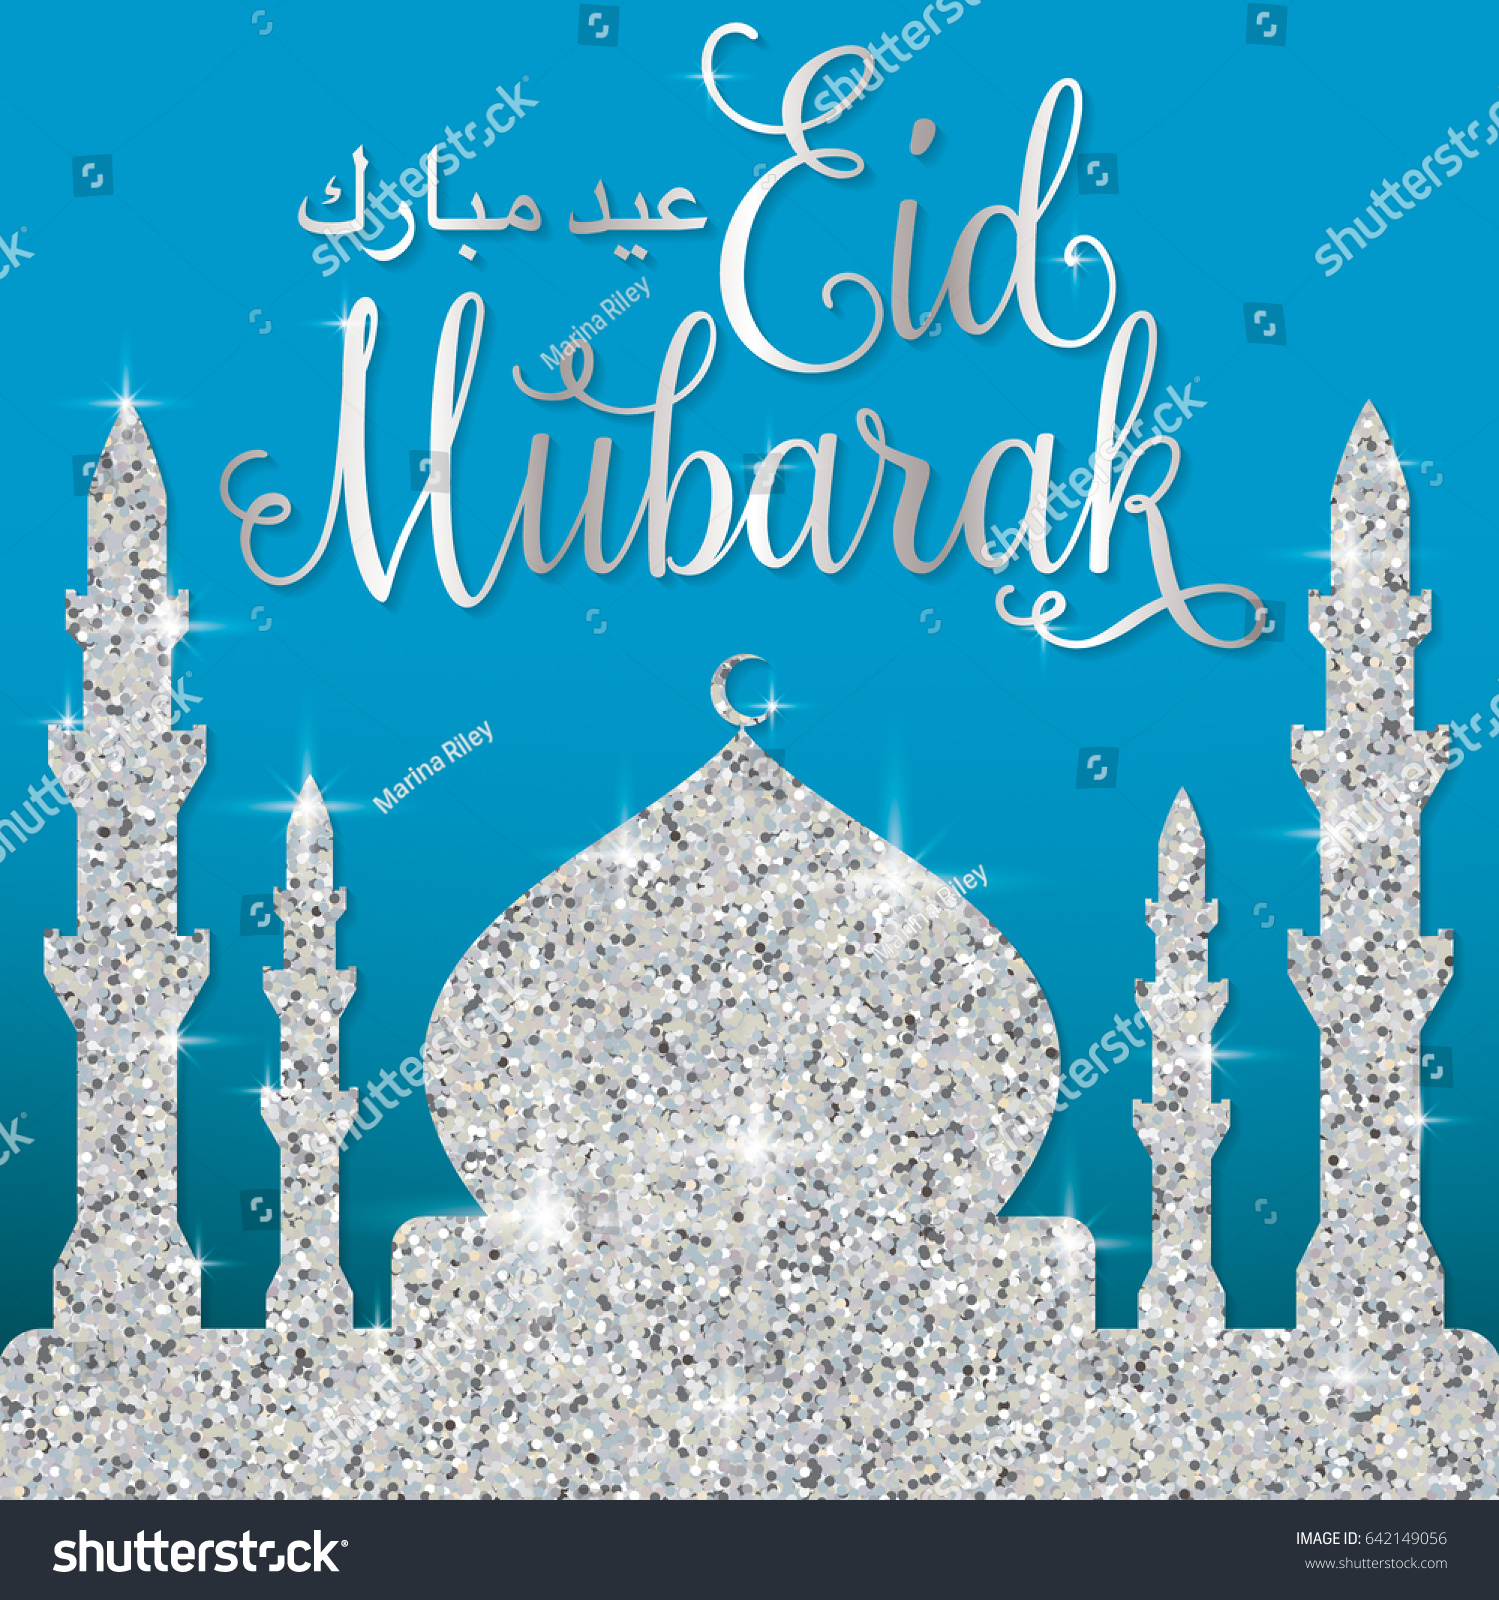 Filigree glitter mosque eid mubarak blessed stock vector 642149056 filigree glitter mosque eid mubarak blessed eid card in vector format kristyandbryce Image collections